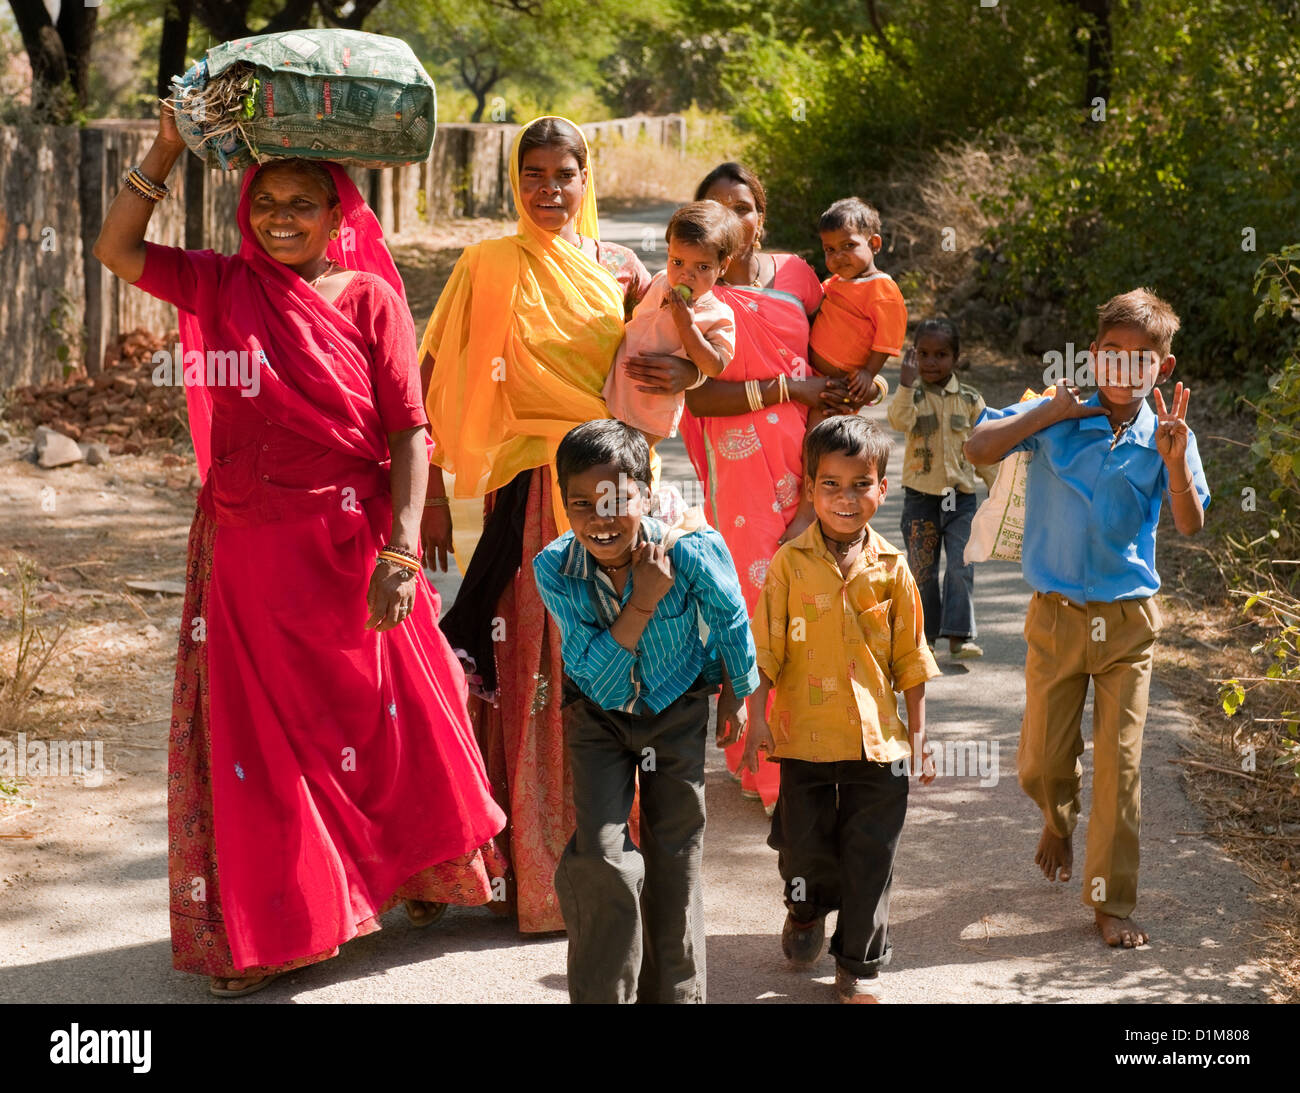 A happy smiling colorful Indian family group of women boys girls and a baby return from shopping on a quiet road Stock Foto